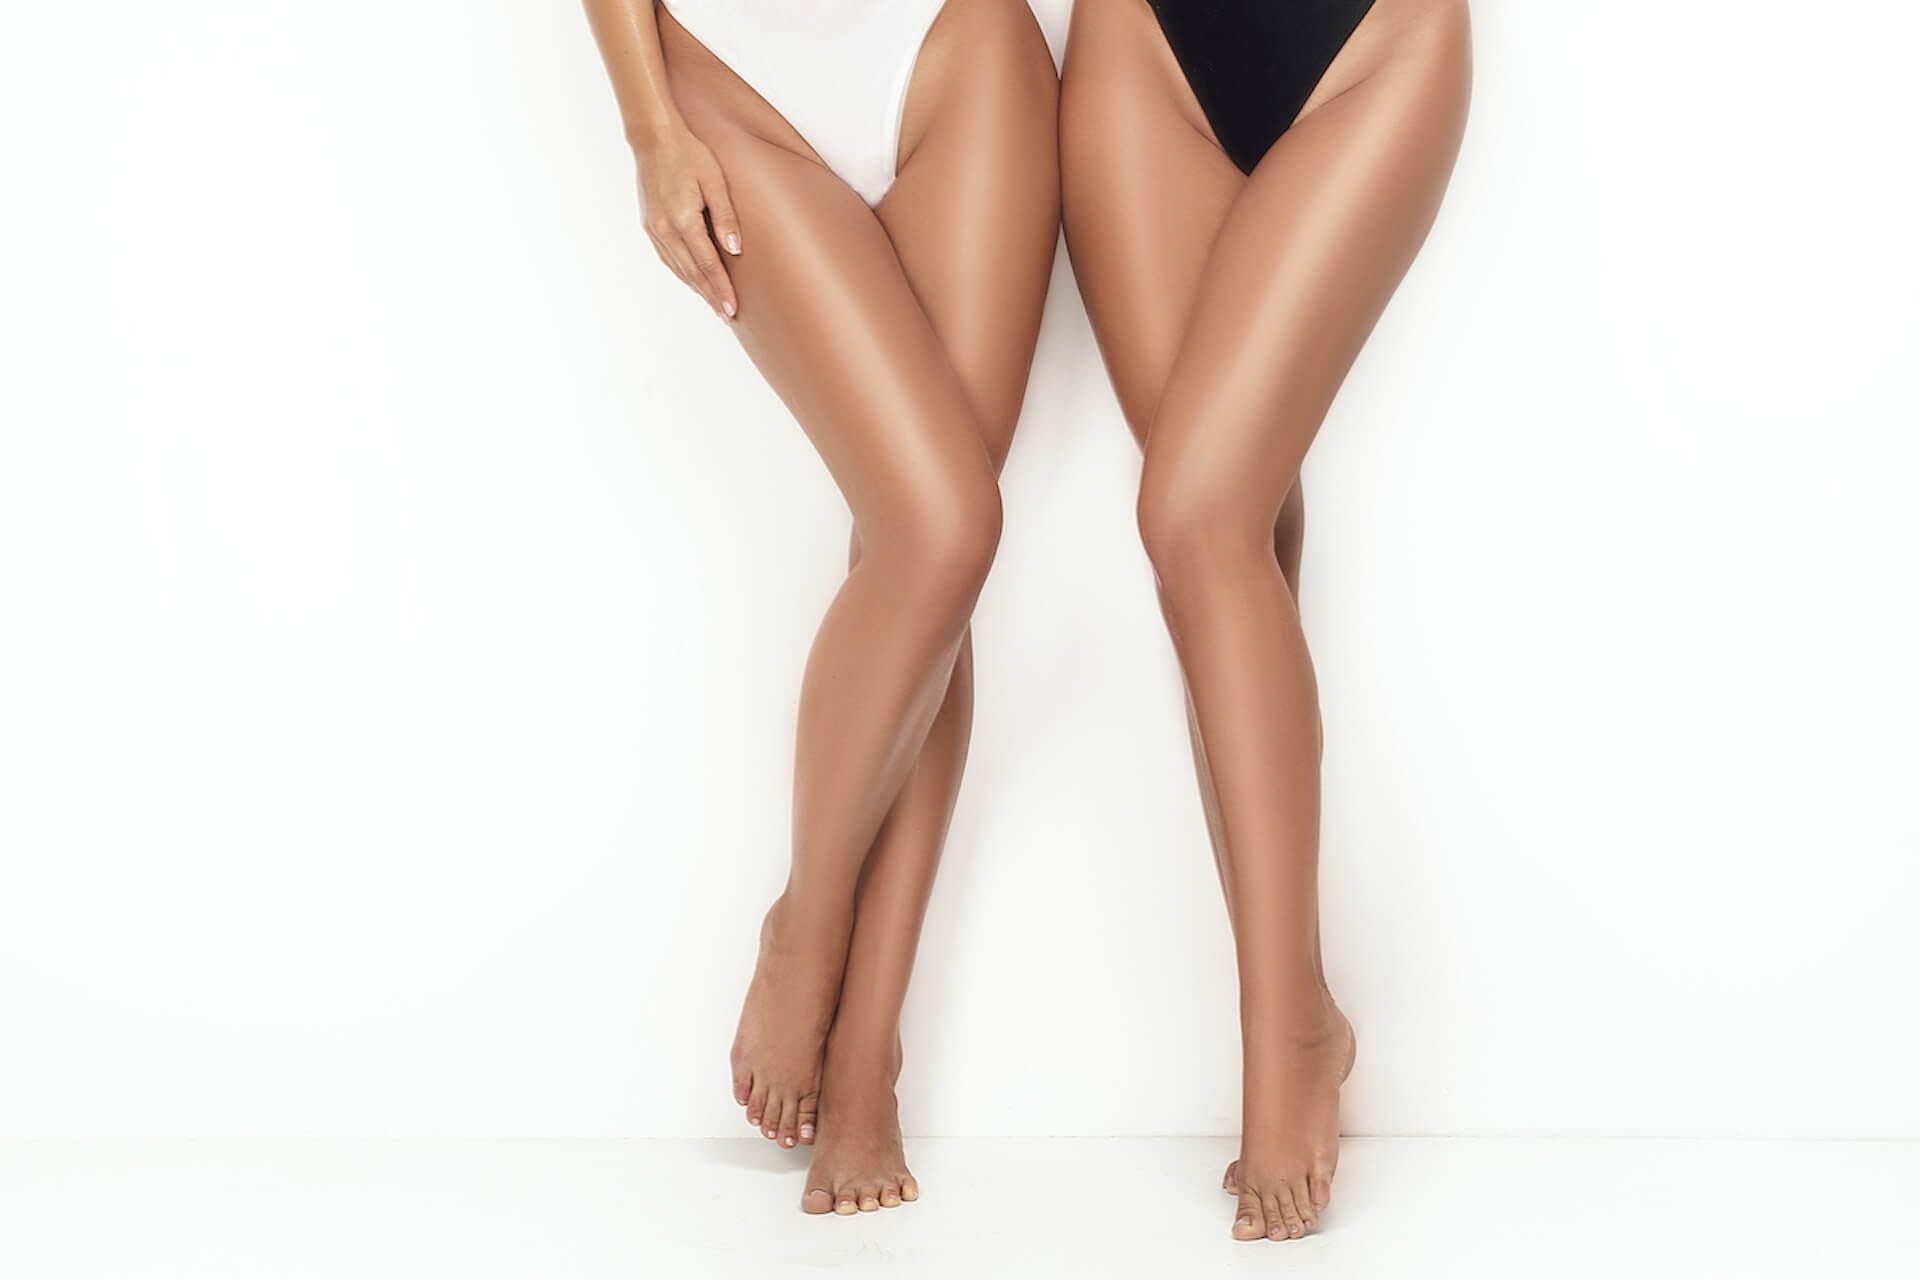 Laser-hair-removal-PHI-Clinic-London 1920 x 1280